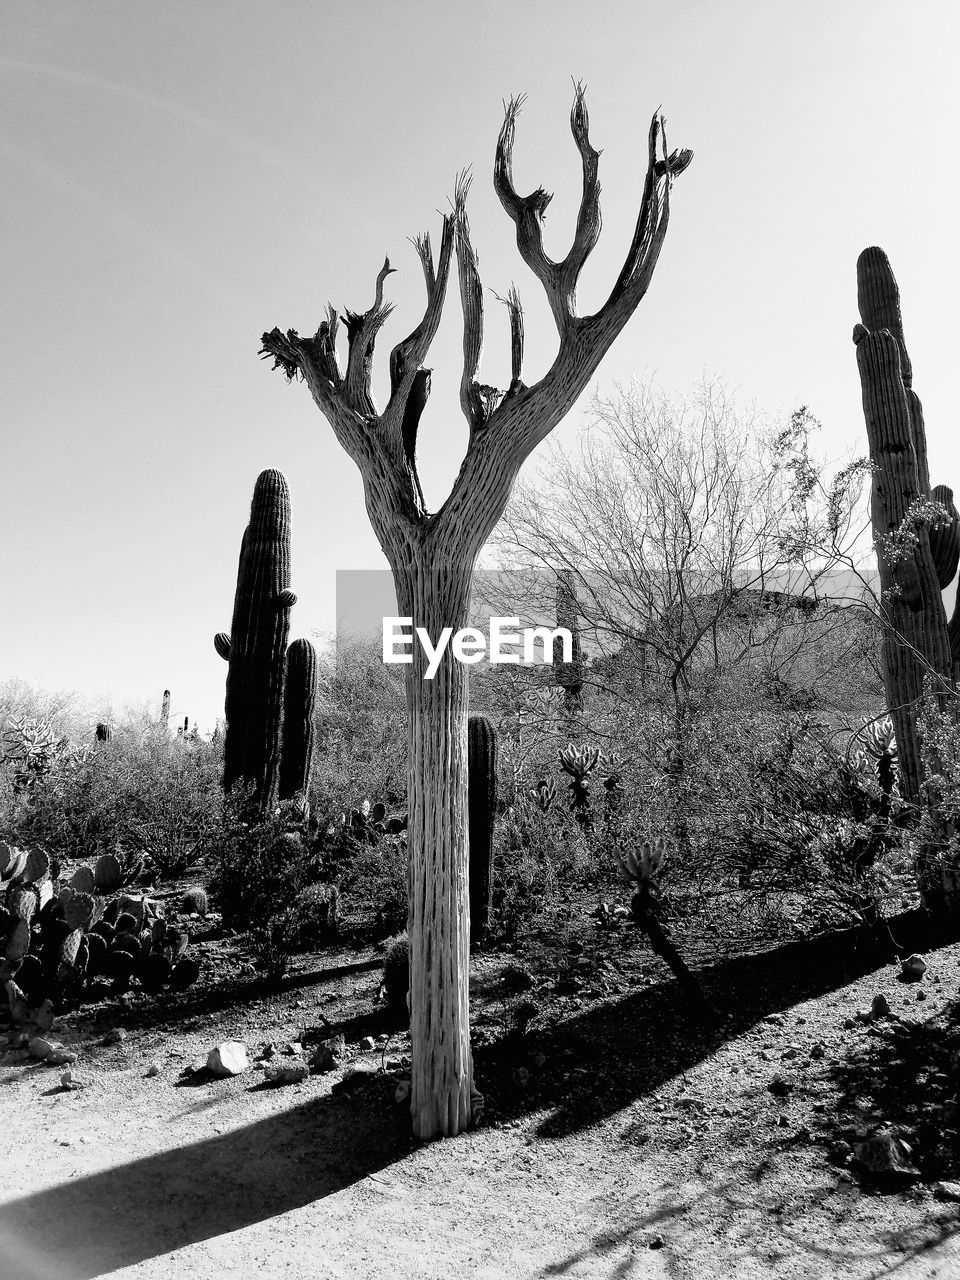 plant, tree, sky, nature, day, cactus, landscape, field, succulent plant, tranquility, land, no people, growth, environment, saguaro cactus, bare tree, clear sky, outdoors, non-urban scene, tranquil scene, dead plant, arid climate